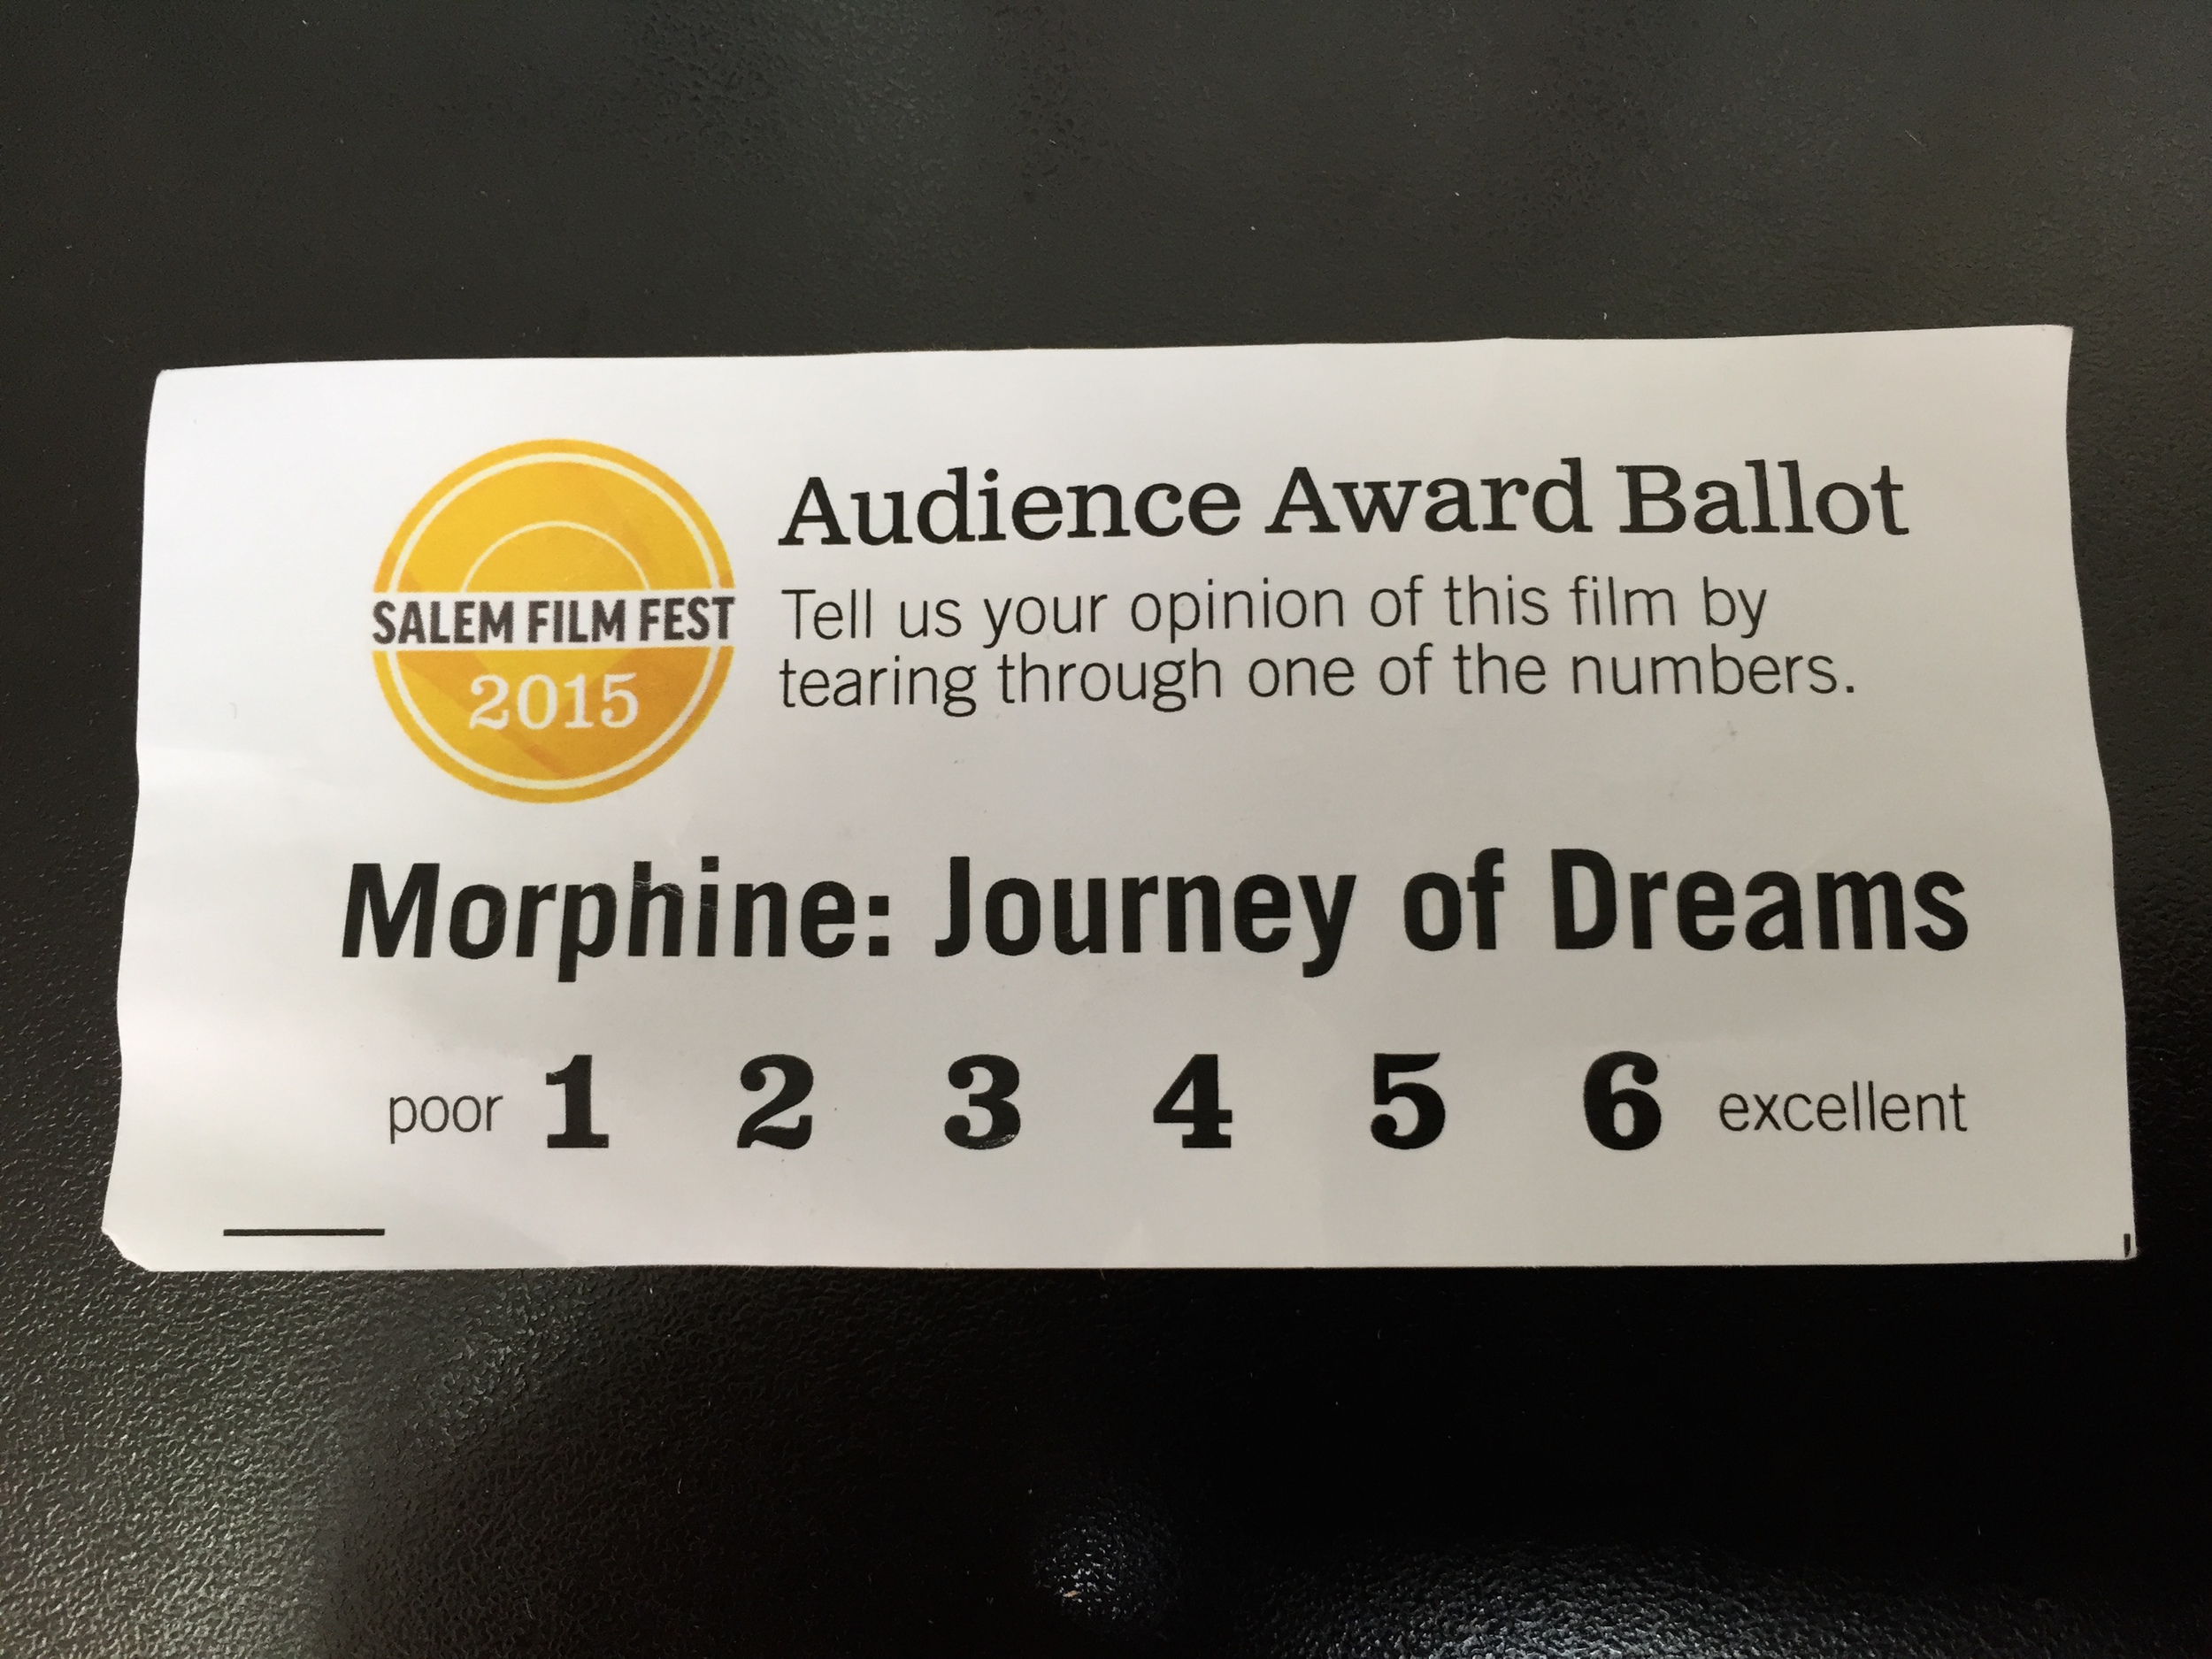 Unfortunately this ticket / ballot was required to get int the Vapors Of Morphine gig afterwards, so they probably didn't get a lot of responses. I'd give it a 5.